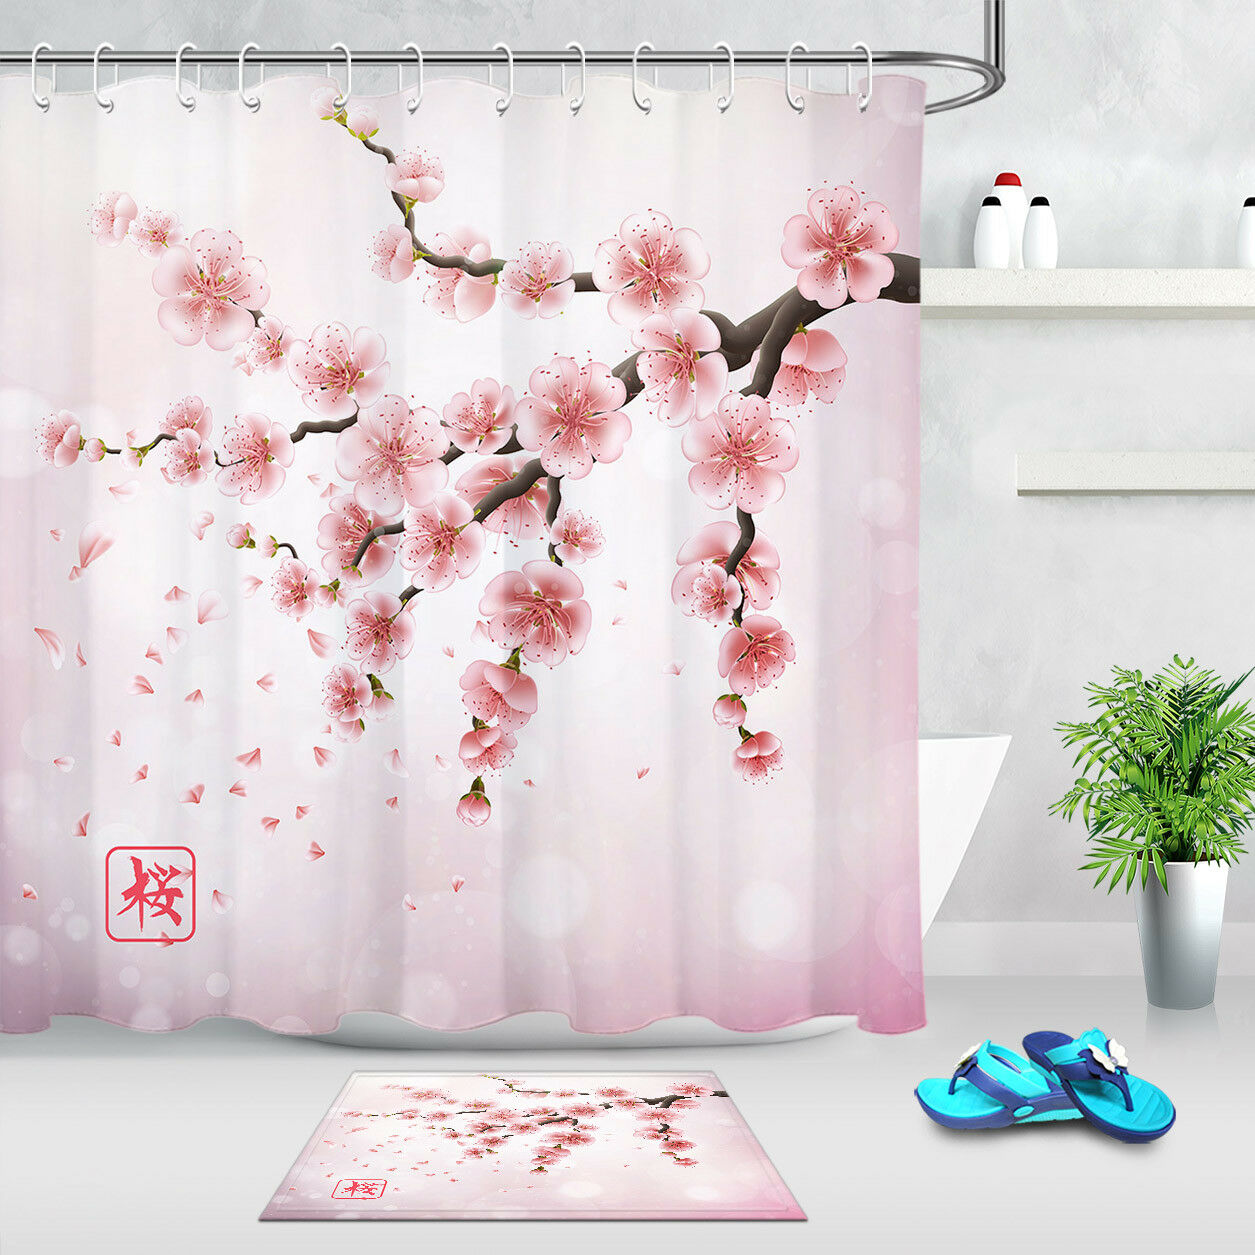 Home Garden Japanese Pink Cherry Blossom Shower Curtain